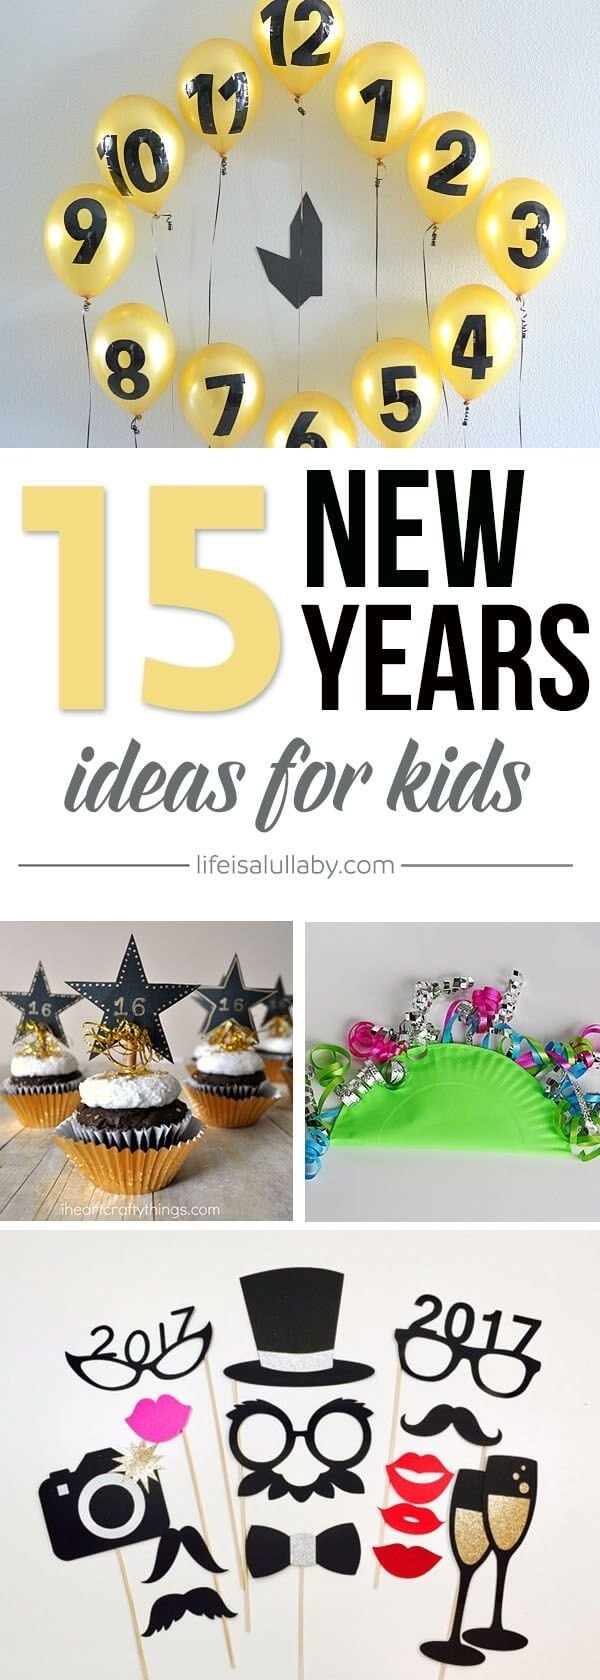 10 Fantastic Fun New Years Eve Ideas 15 new years eve ideas for kids fetes idees de fete et nouvel an 2020